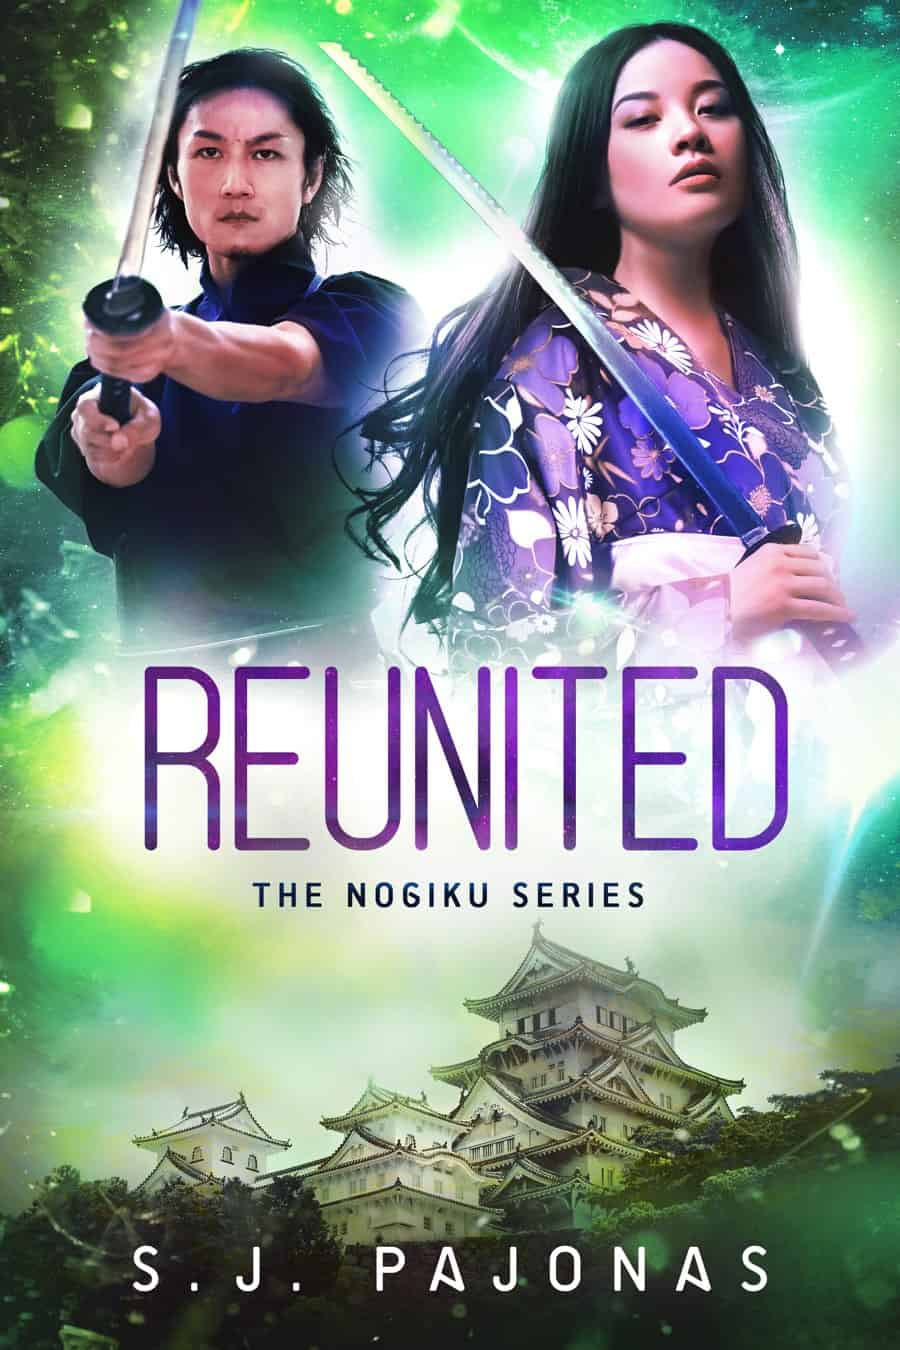 Get REUNITED, the third book of the Nogiku Series, now!